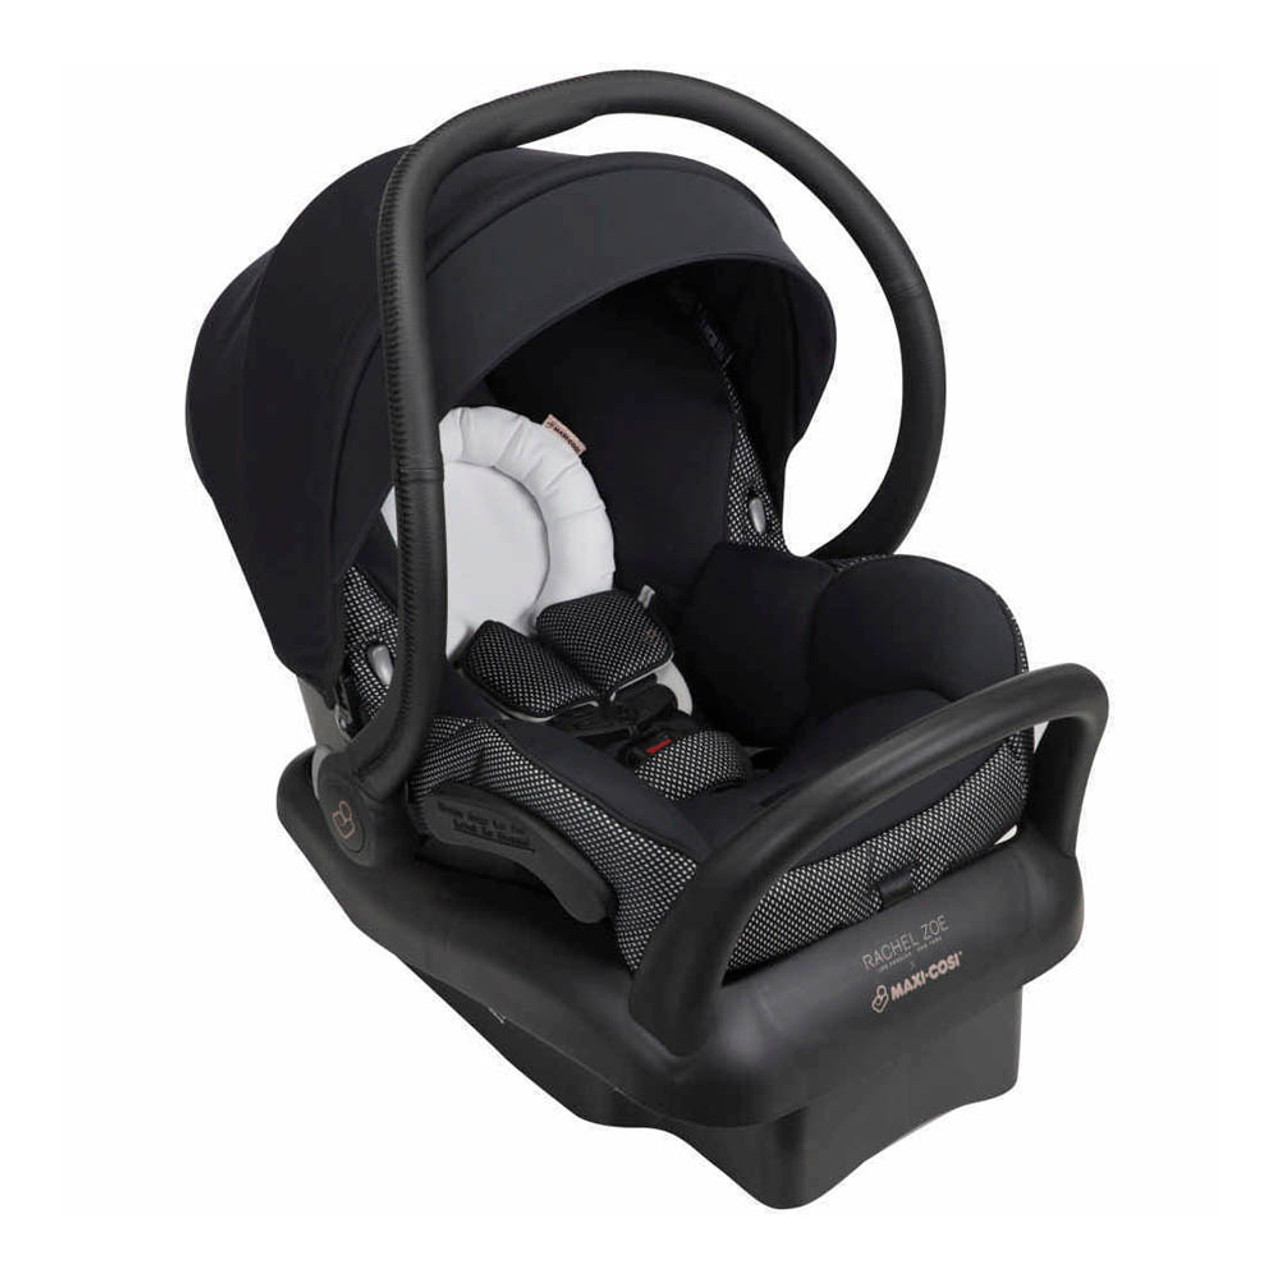 Maxi Cosi Mico Max 30 Infant Car Seat Limited Edition Rachel Zoe Collection Luxe Sport